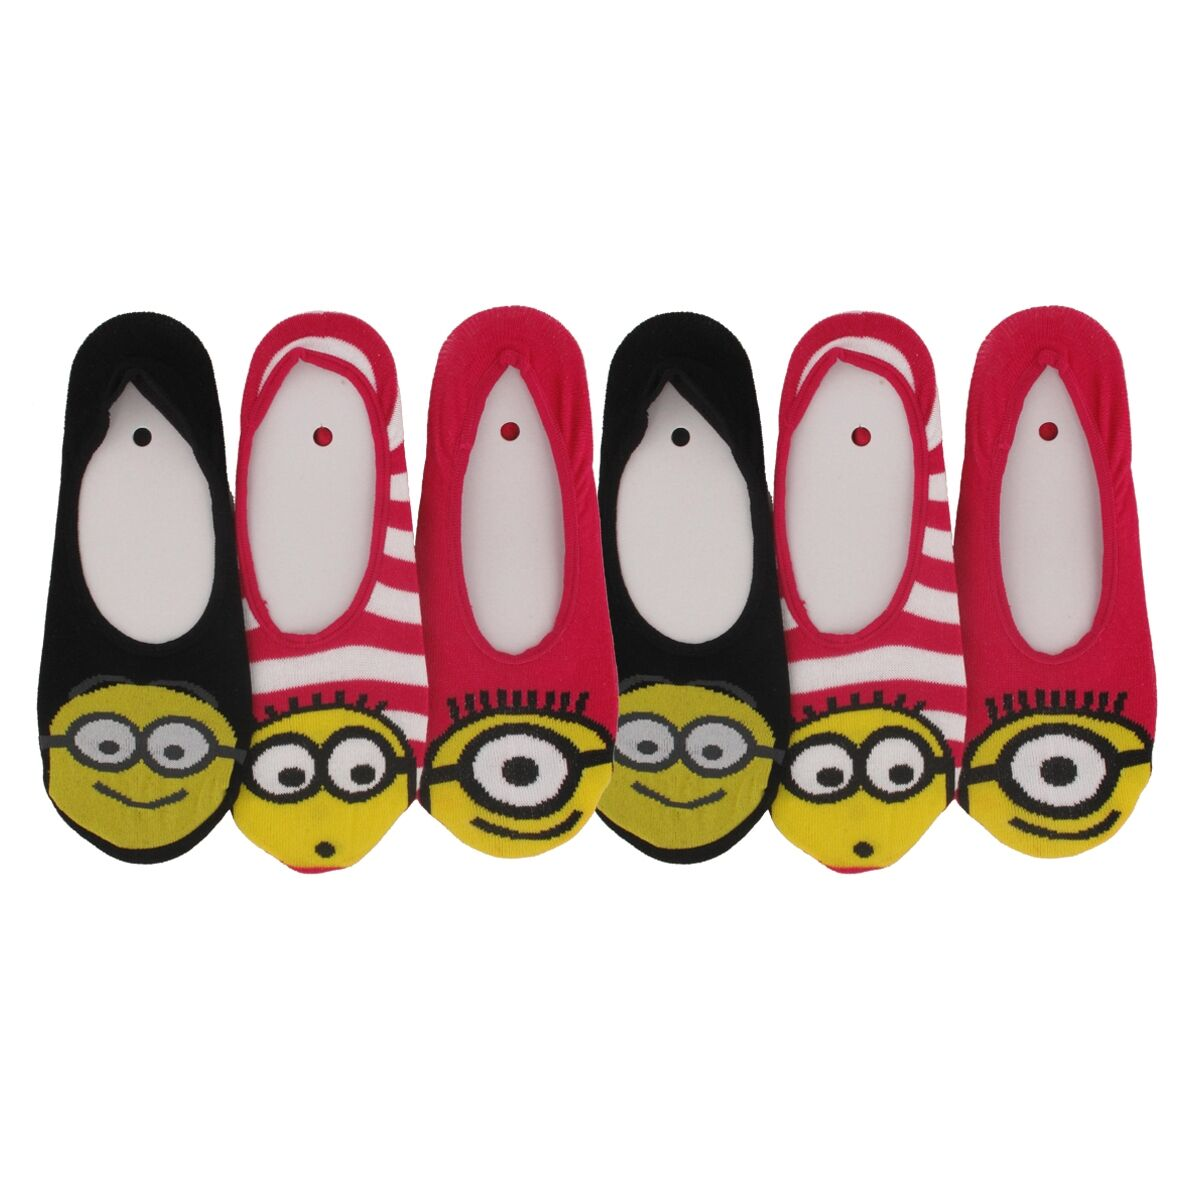 chaussettes invisibles femme les minions lot de 6 les minions. Black Bedroom Furniture Sets. Home Design Ideas